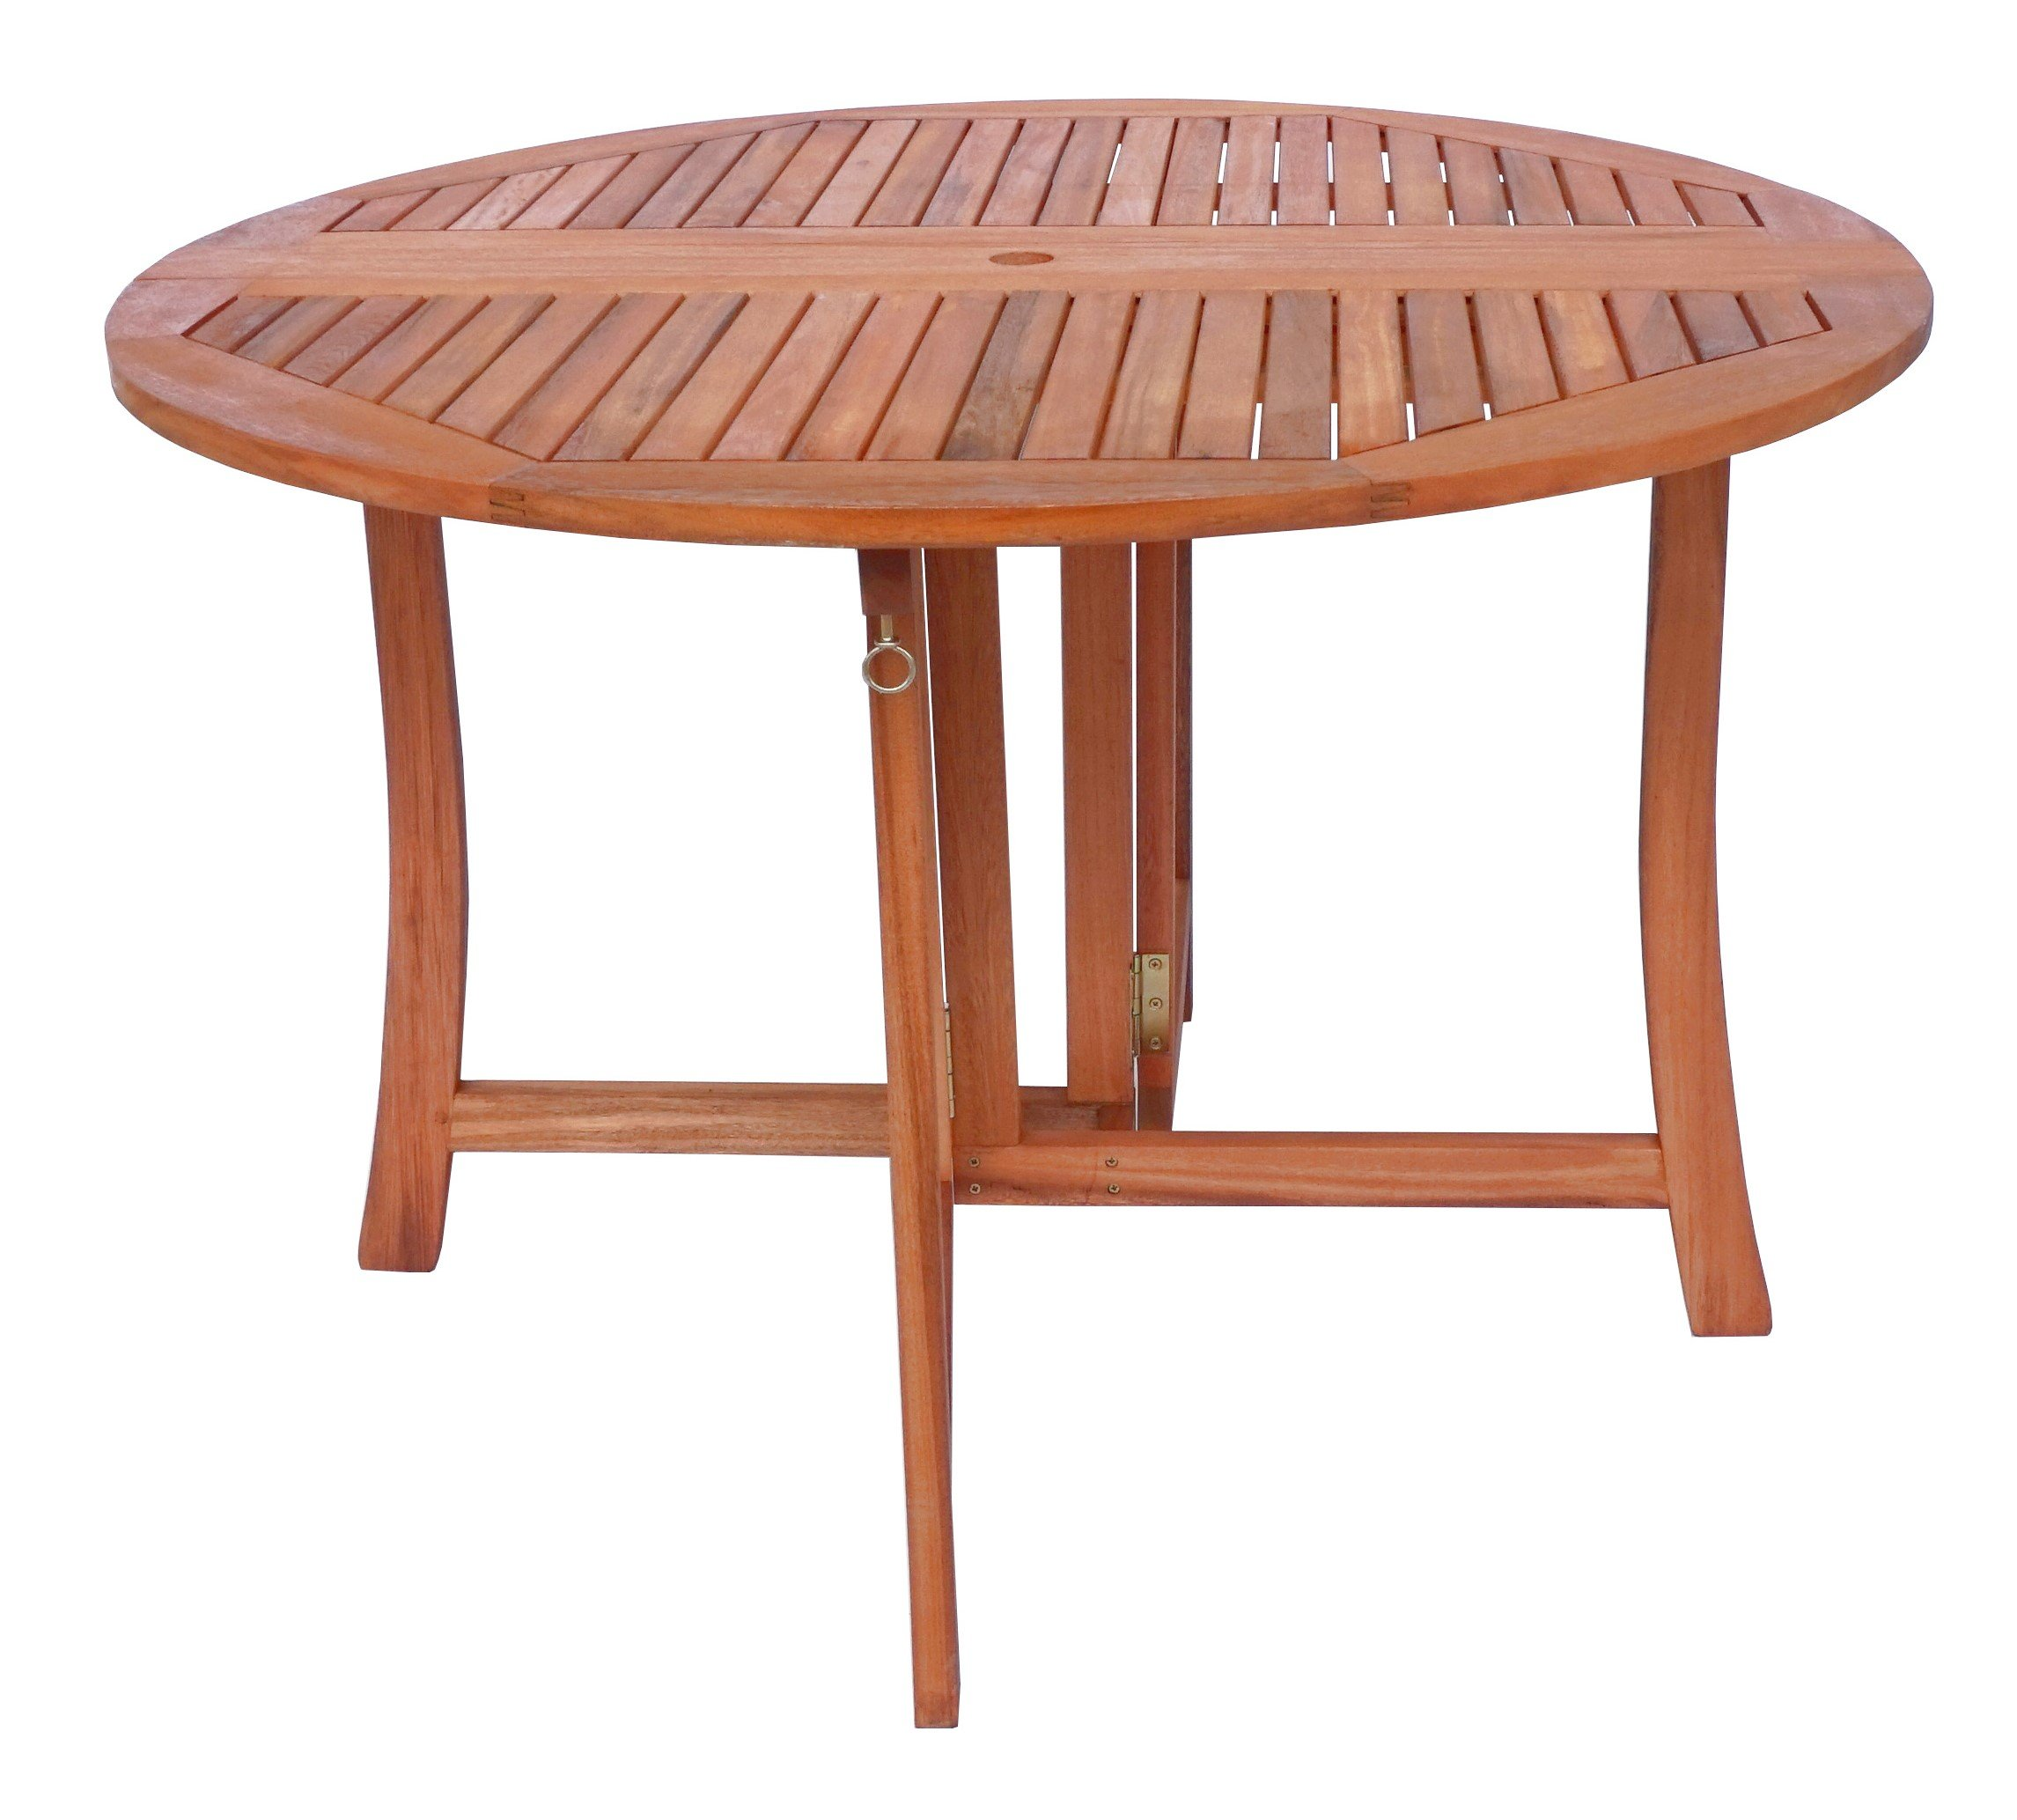 Zen Garden 43 inch Eucalyptus Foldable Deck Table, Natural Wood Finish